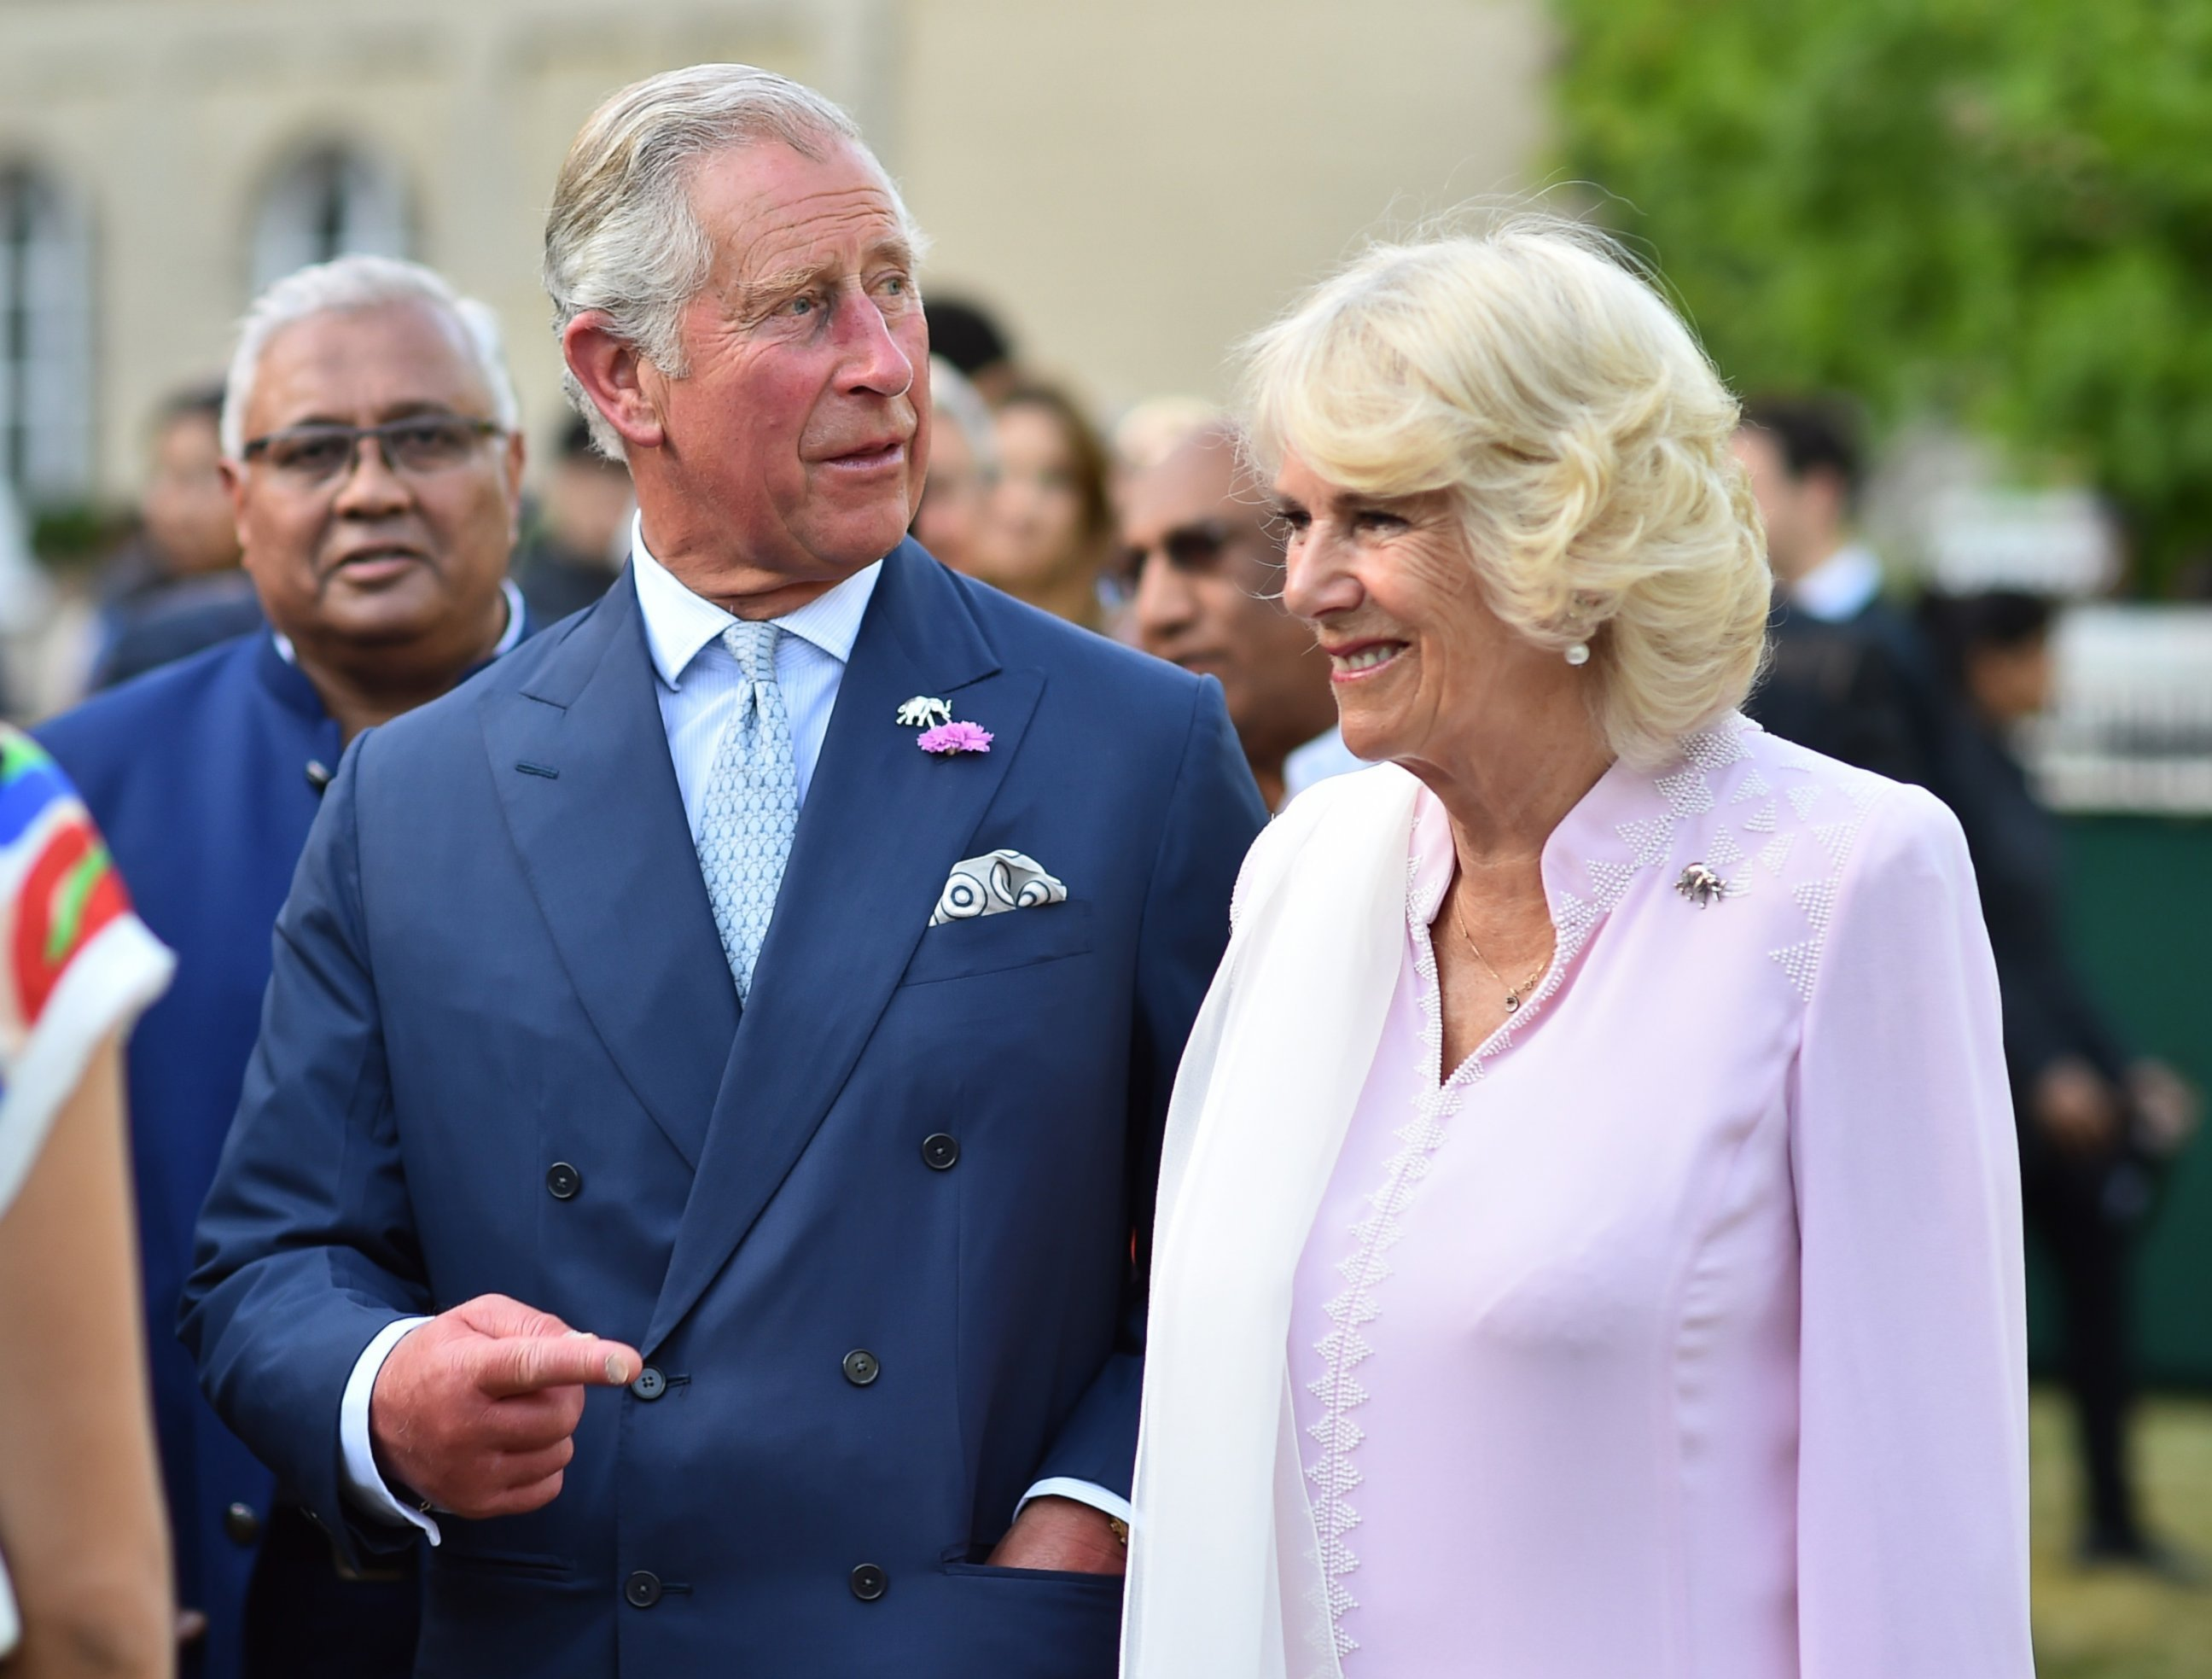 prince charles essay Barring his death, prince charles will be the next british monarch here's why: first, the queen doesn't have the power to choose her successor the 1701 act of settlement is the act of parliament that determines the succession to the throne, and requires that a monarch's heir must be his or her direct successor (and a protestant.